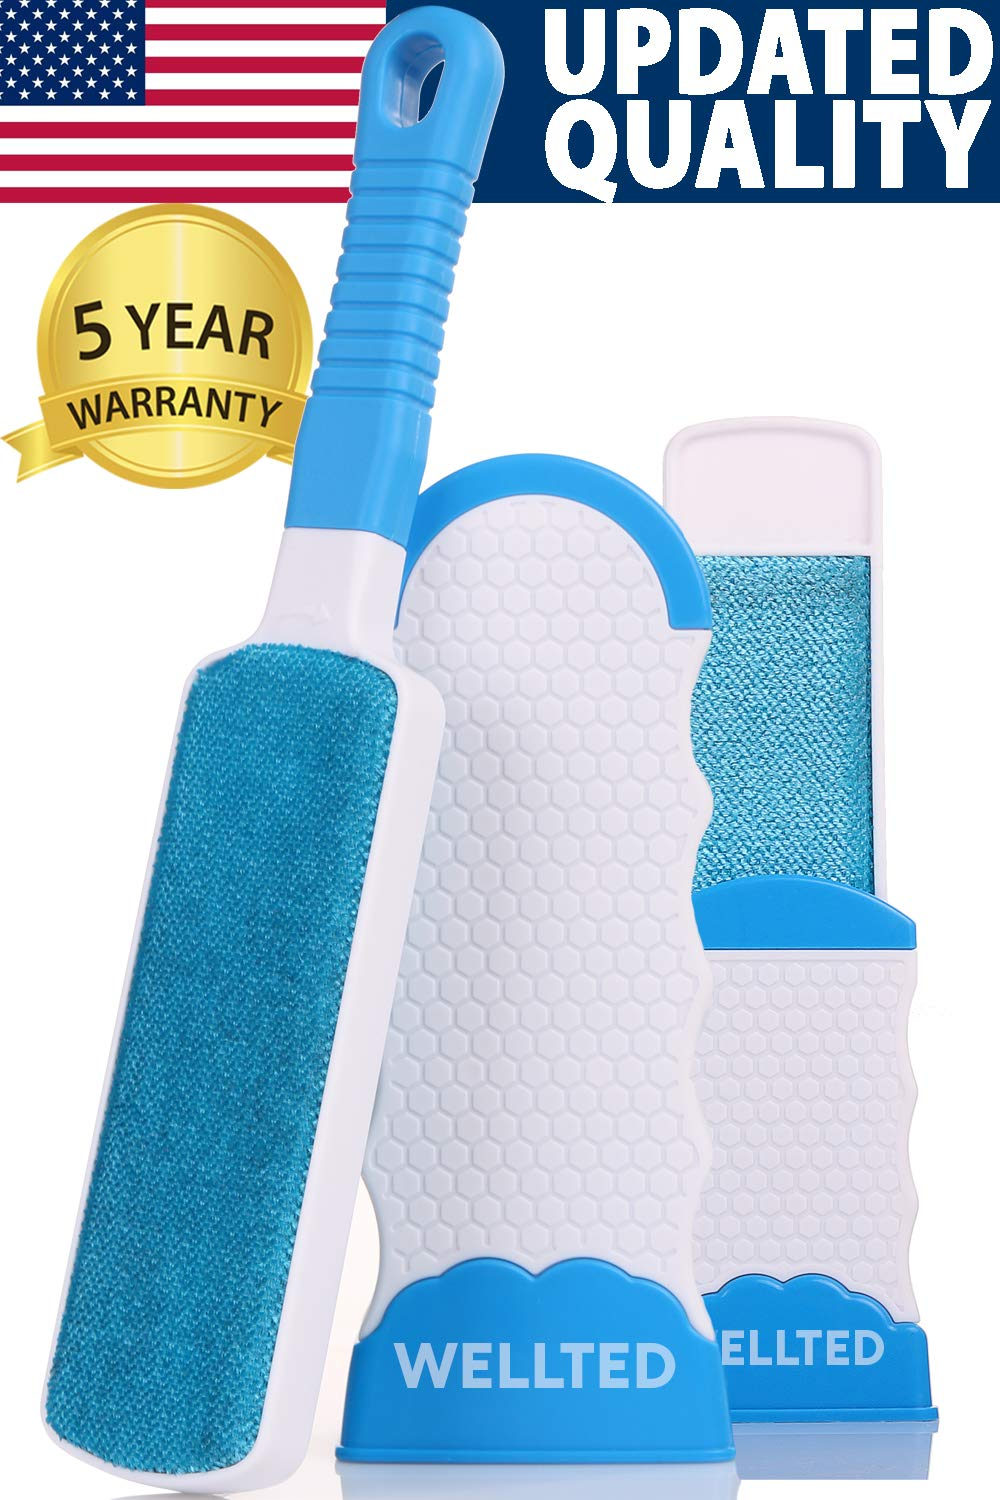 WELLTED Pet Hair Remover Brush - Lint Brush - Fur Remover - Fur & Lint Removal - Dog & Cat Hair Remover - Double-Sided Brush with Self-Cleaning Base - for Furniture Clothing Car Seat by WELLTED